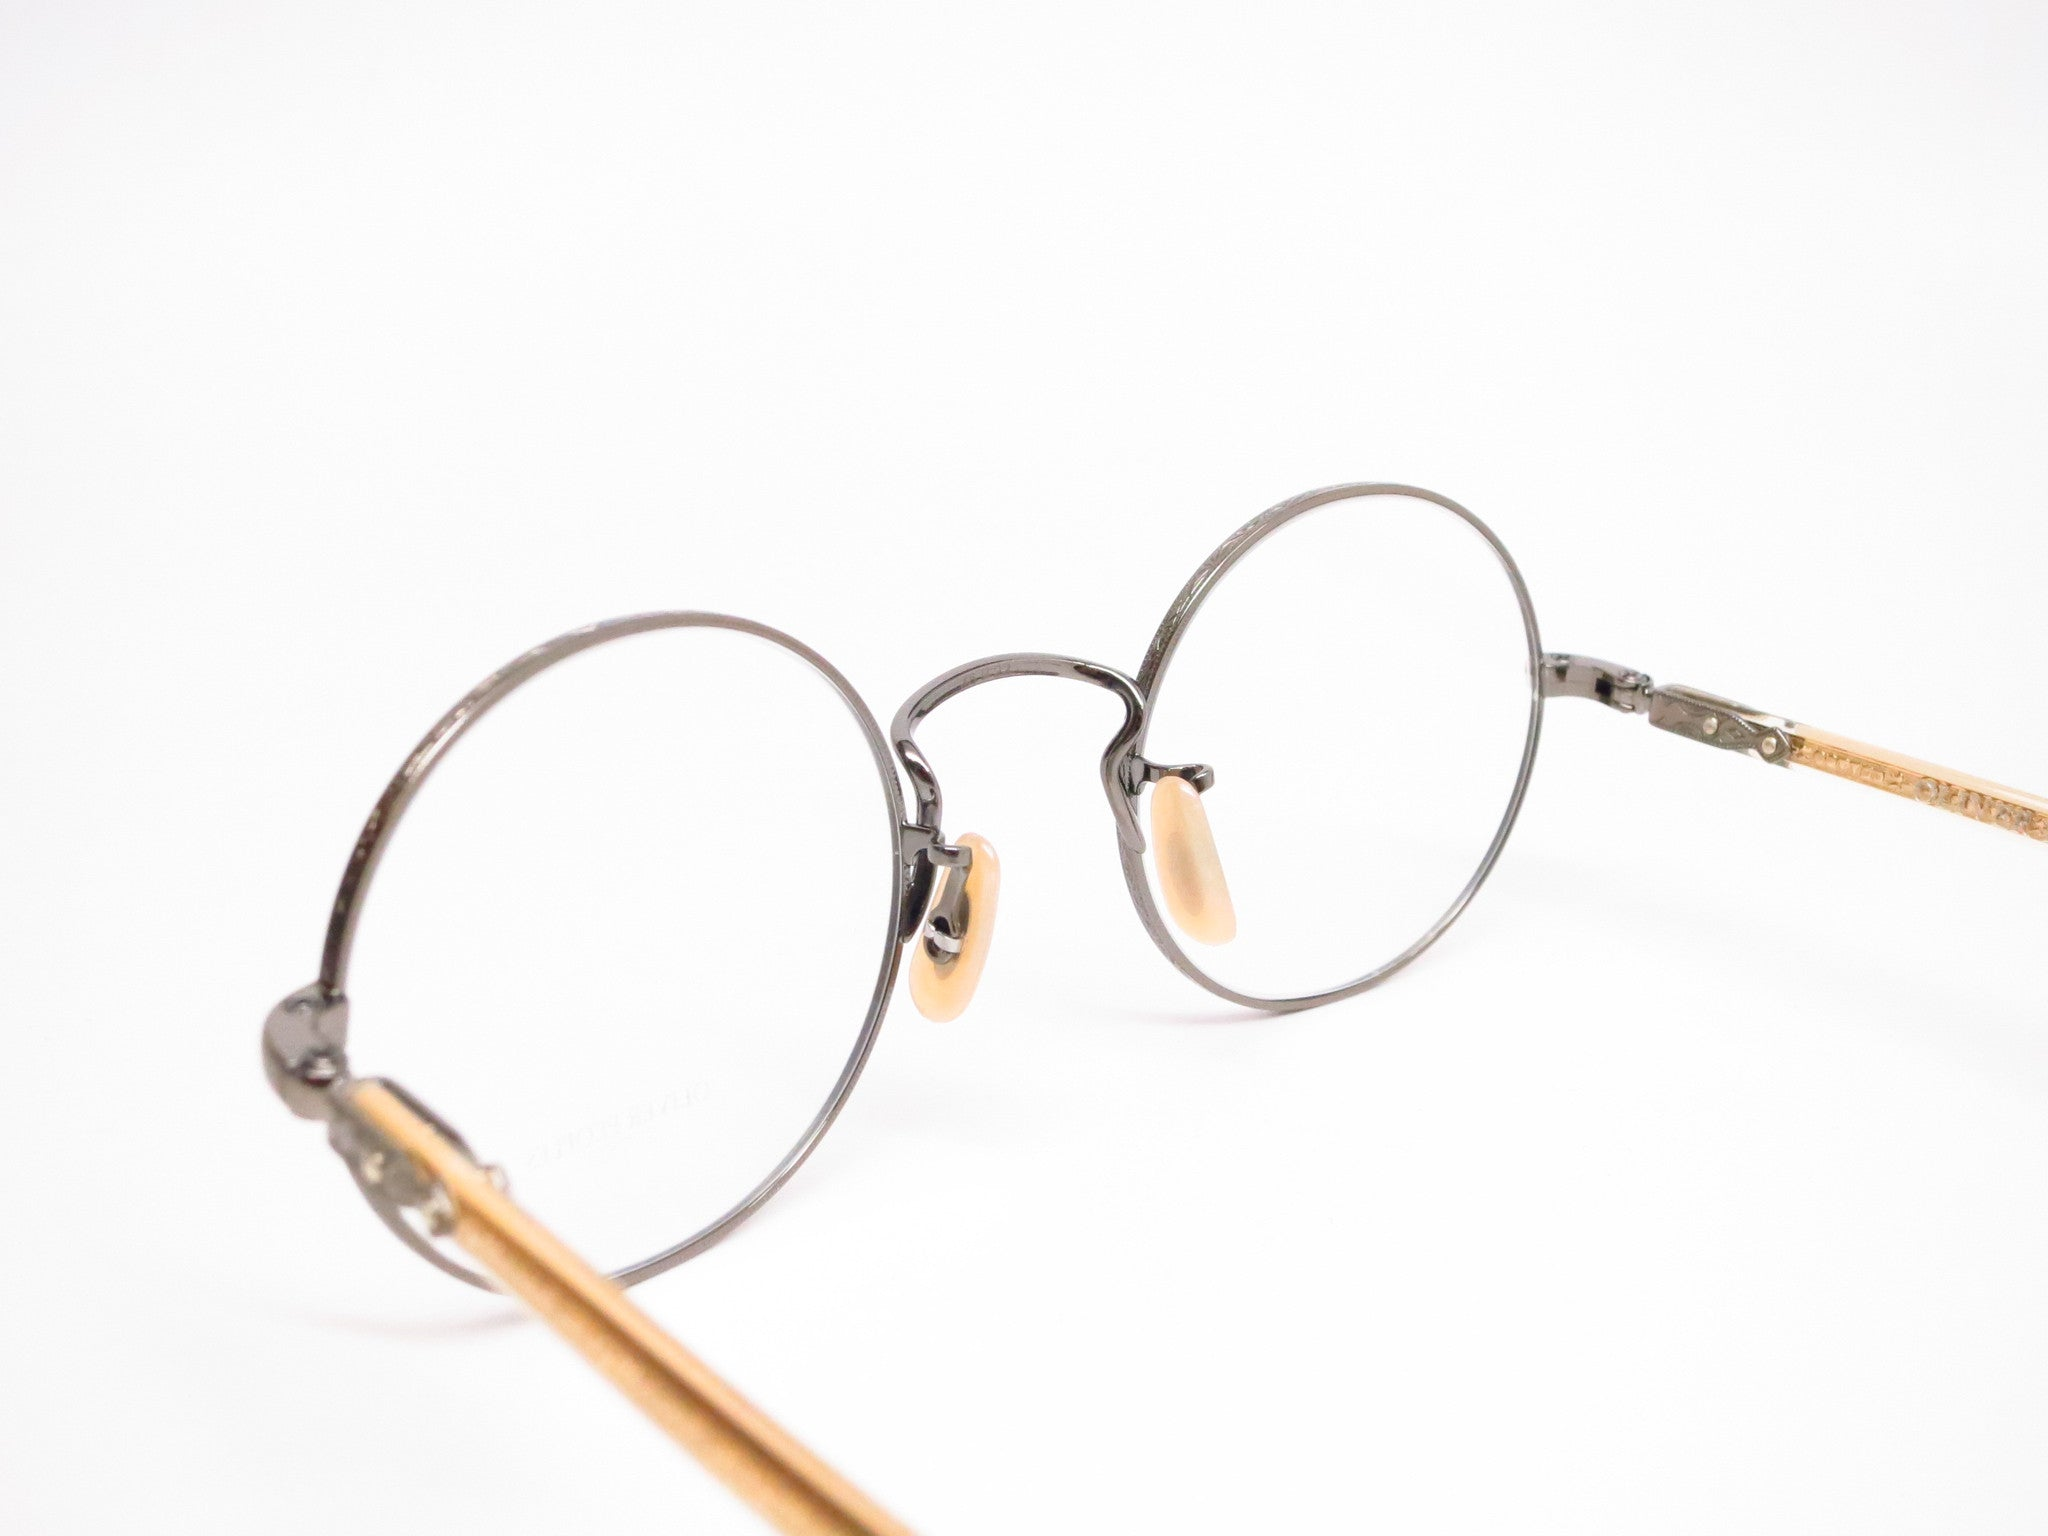 a08957a32e8 ... Oliver Peoples Overstreet OV 1190 5039 Antique Gold Eyeglasses - Eye  Heart Shades - Oliver Peoples ...